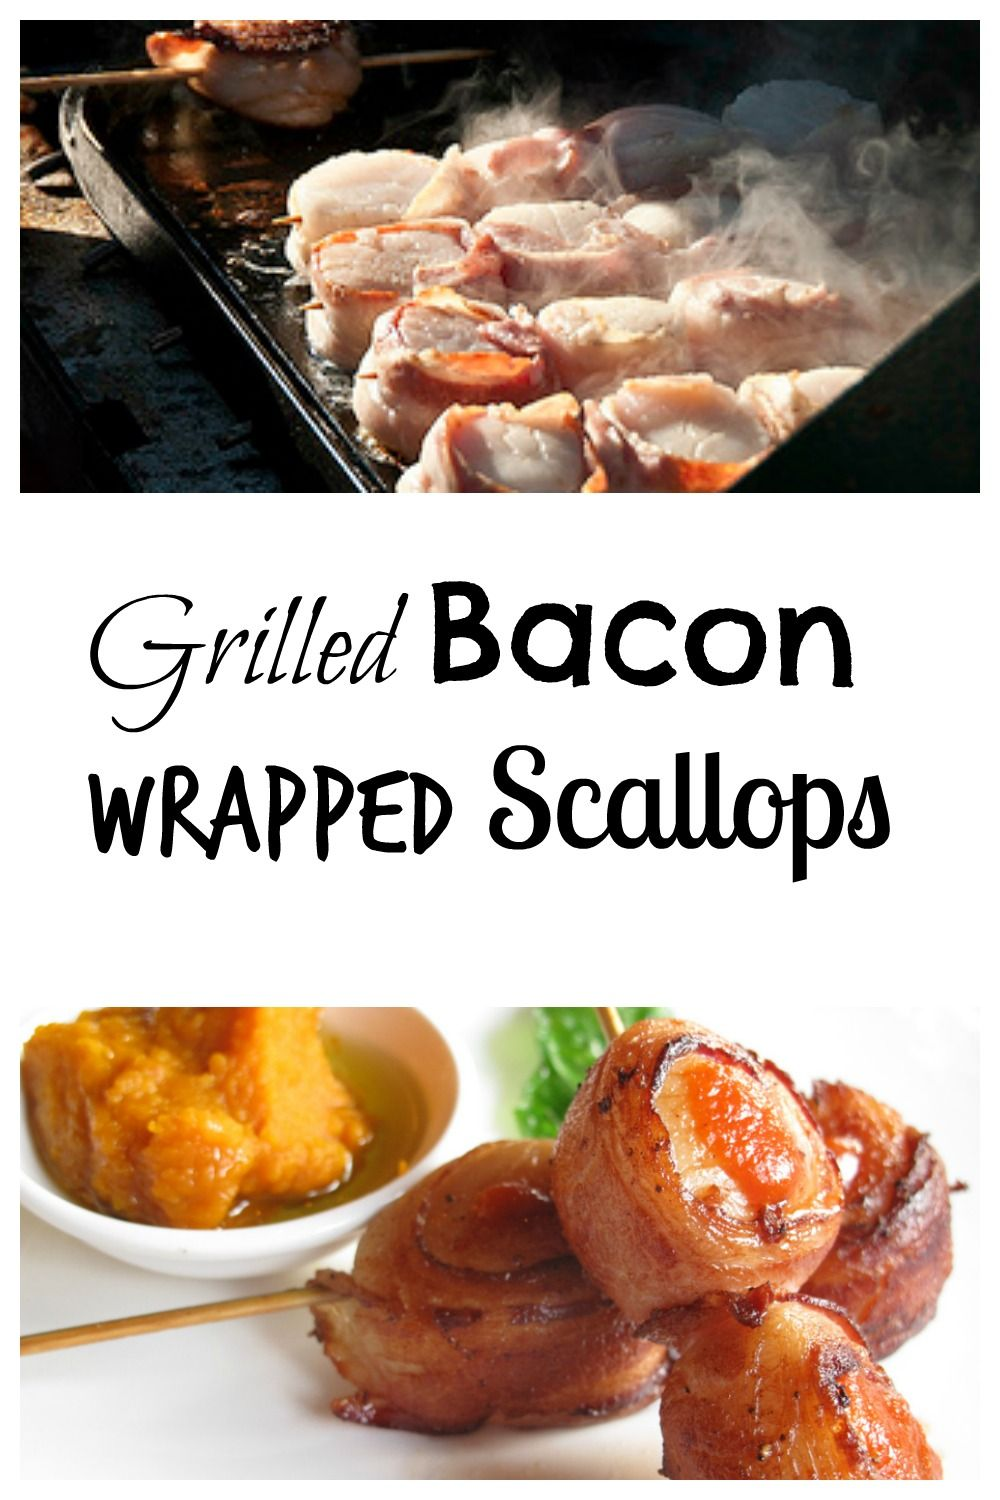 how to cook bacon wrapped scallops on grill